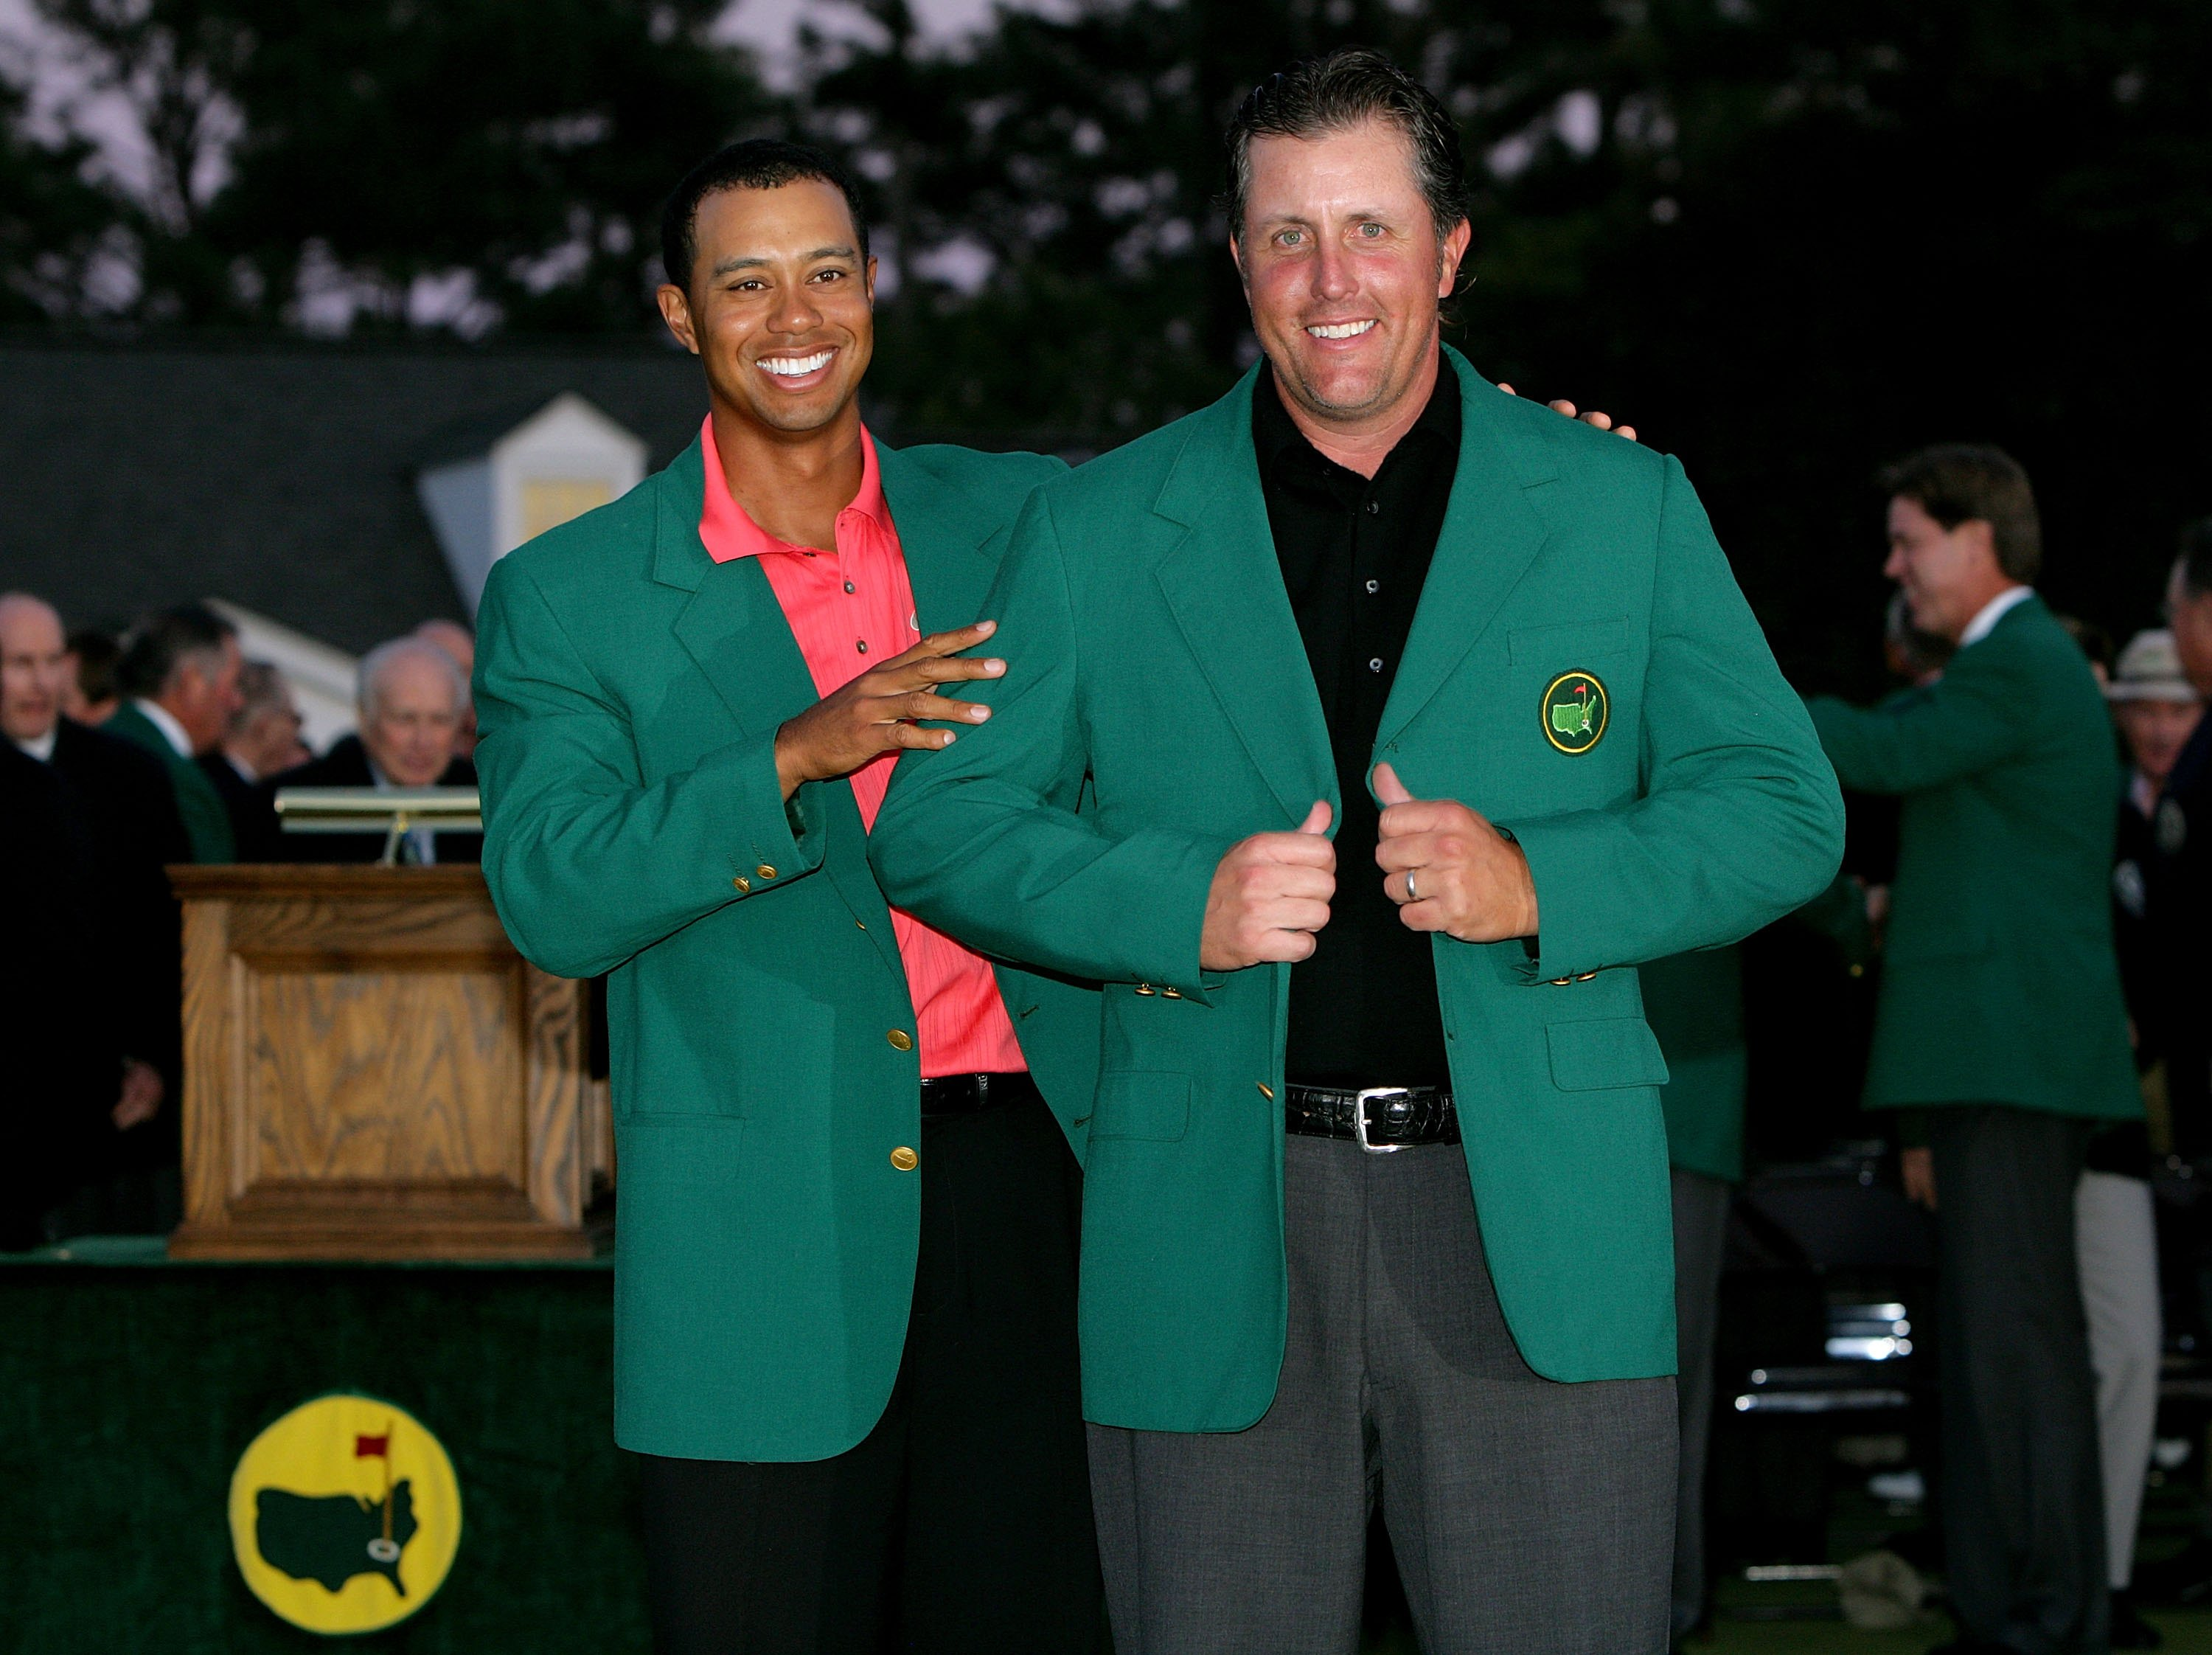 Augusta 2006 and the Green Jacket | Is the Tiger Woods and Phil ...